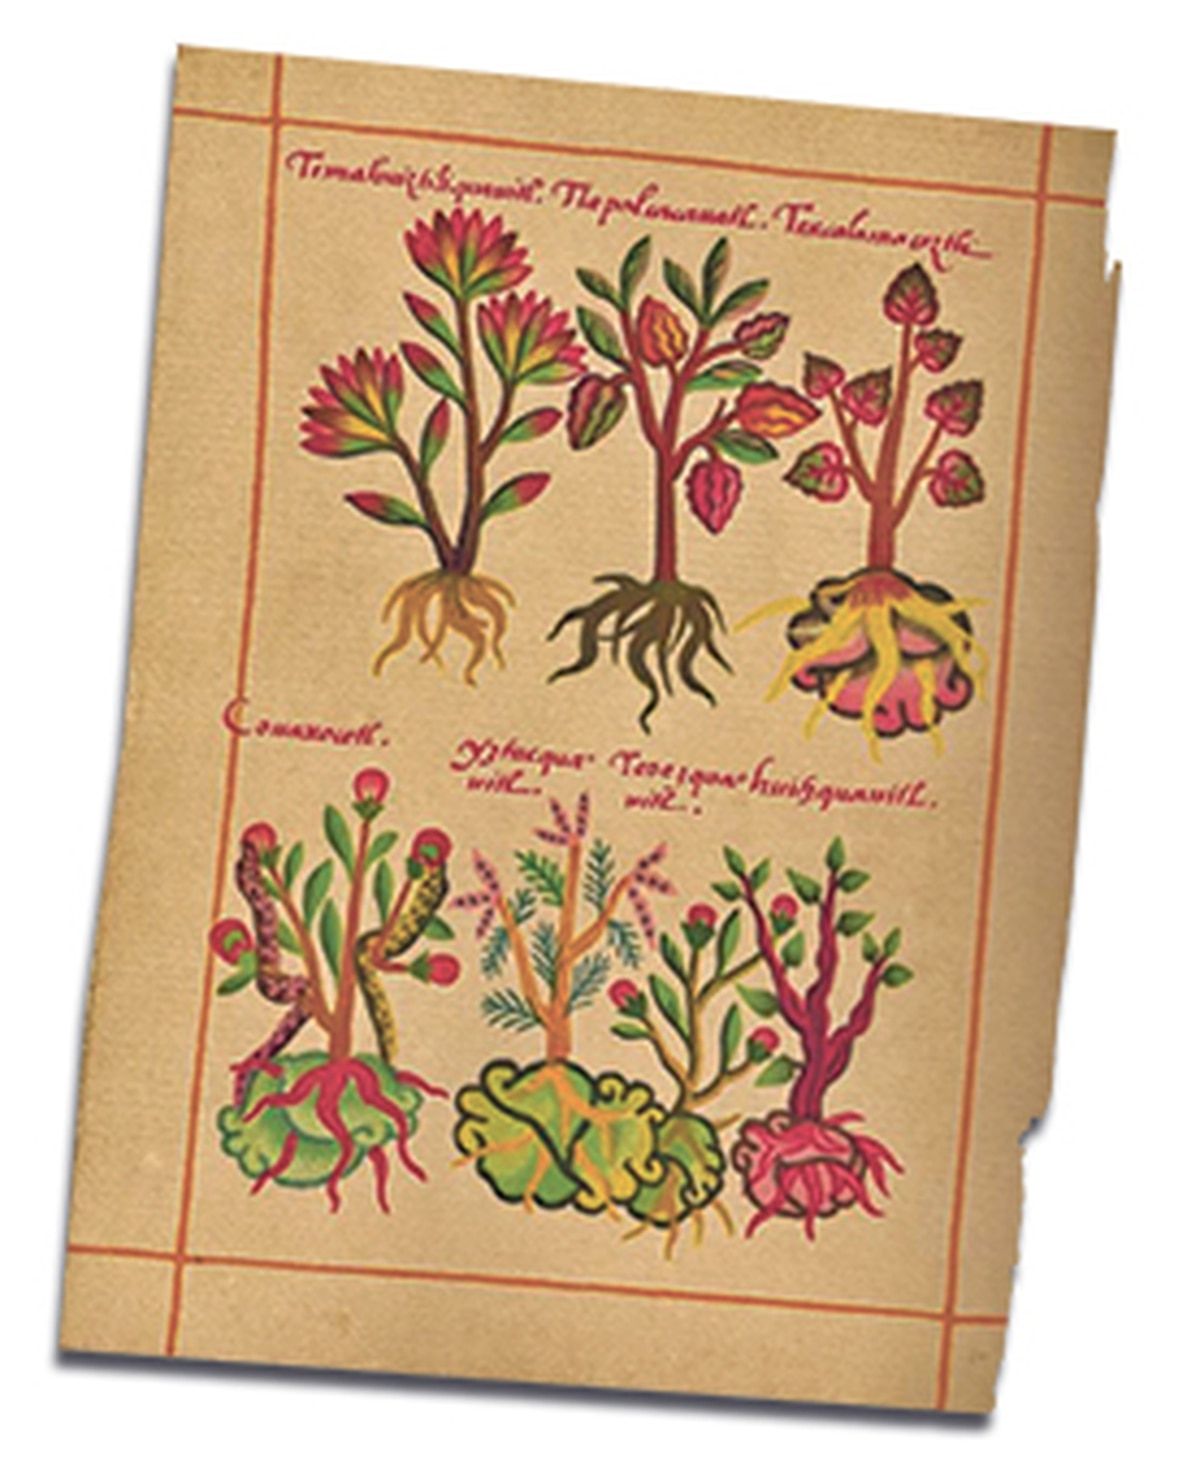 A page from the Little Book of Medicinal Herbs of the Indians.